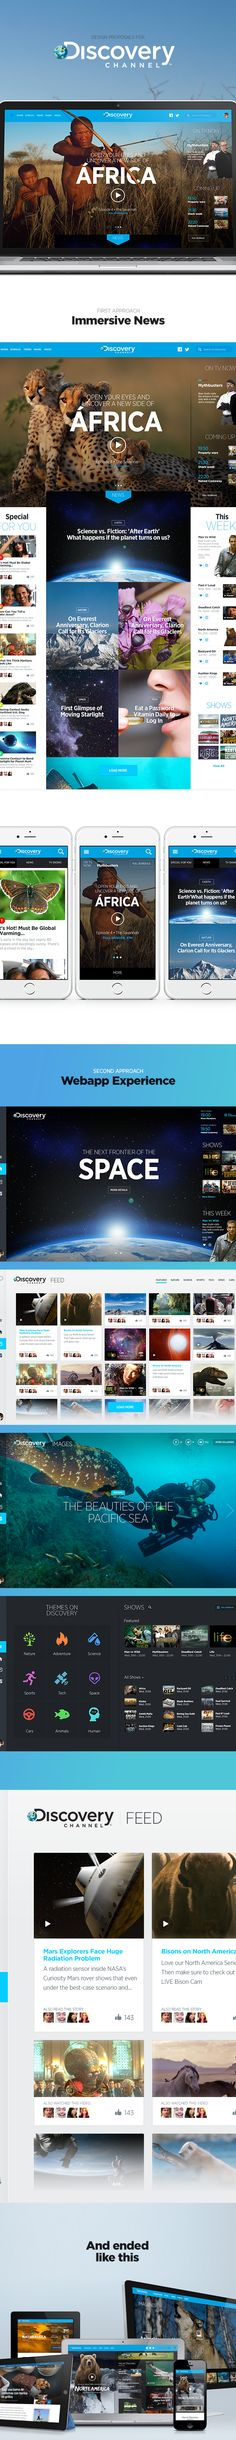 Discovery Channel Latin America Website Design